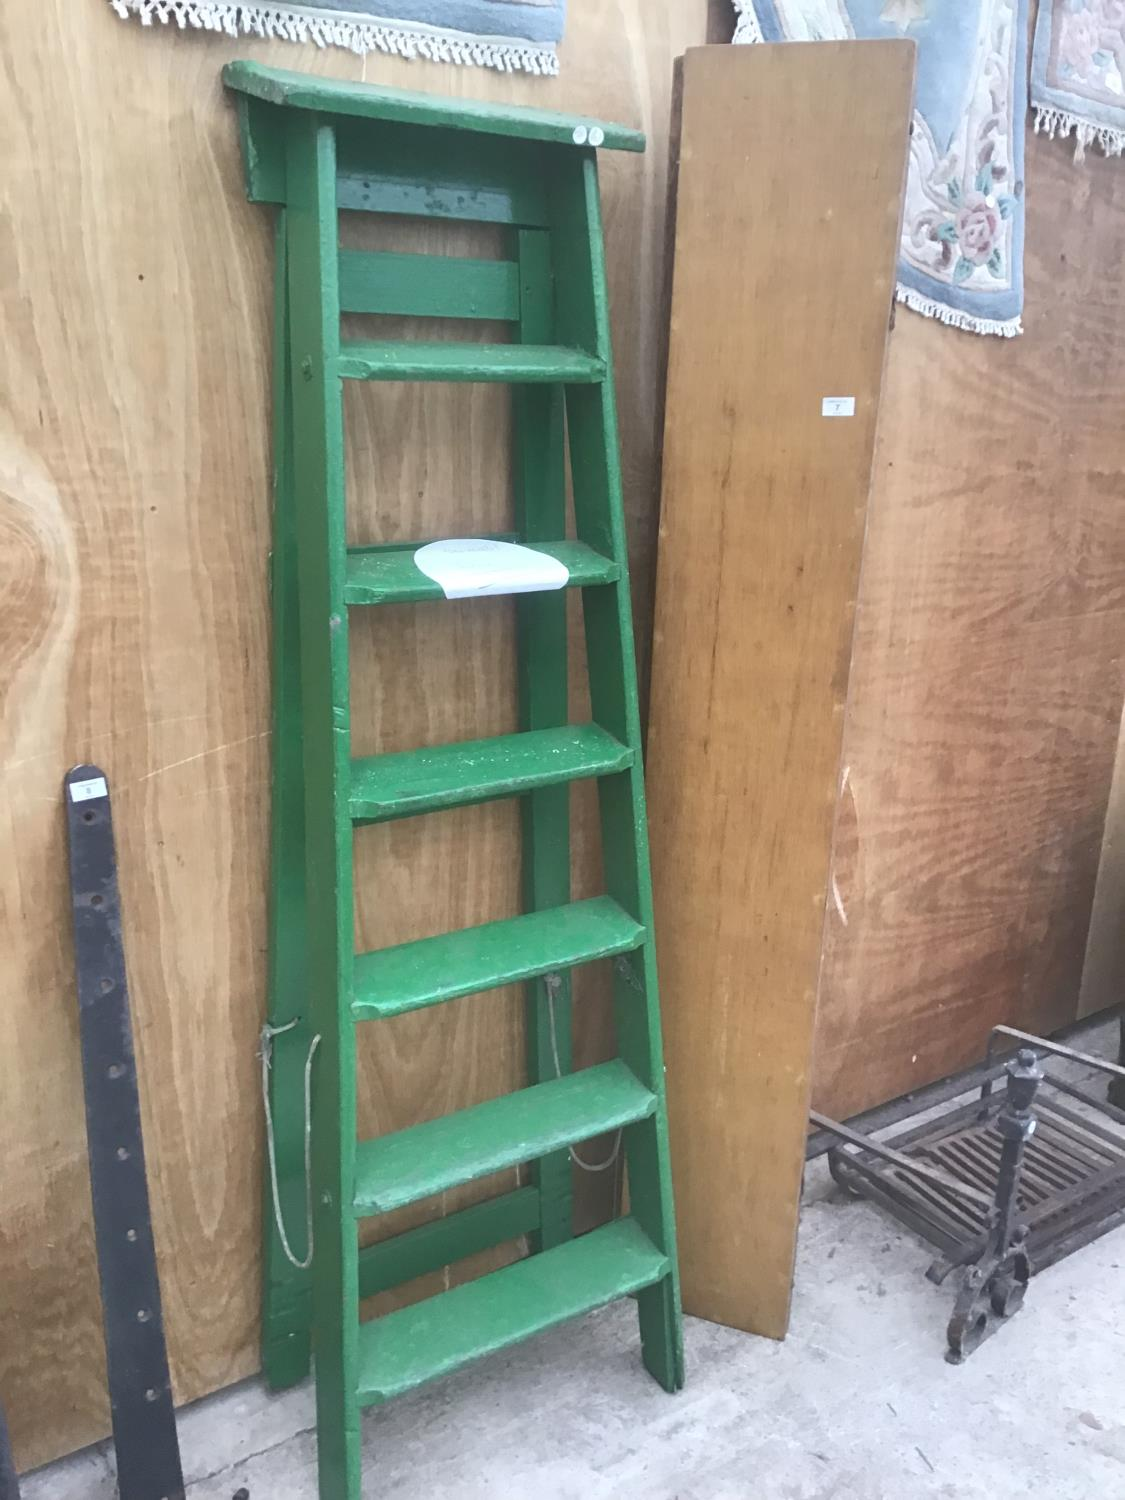 A VINTAGE SIX STEP GREEN PAINTED WOODEN STEP LADDER AND A VINTAGE FOLDING WOODEN TABLE - Image 2 of 2